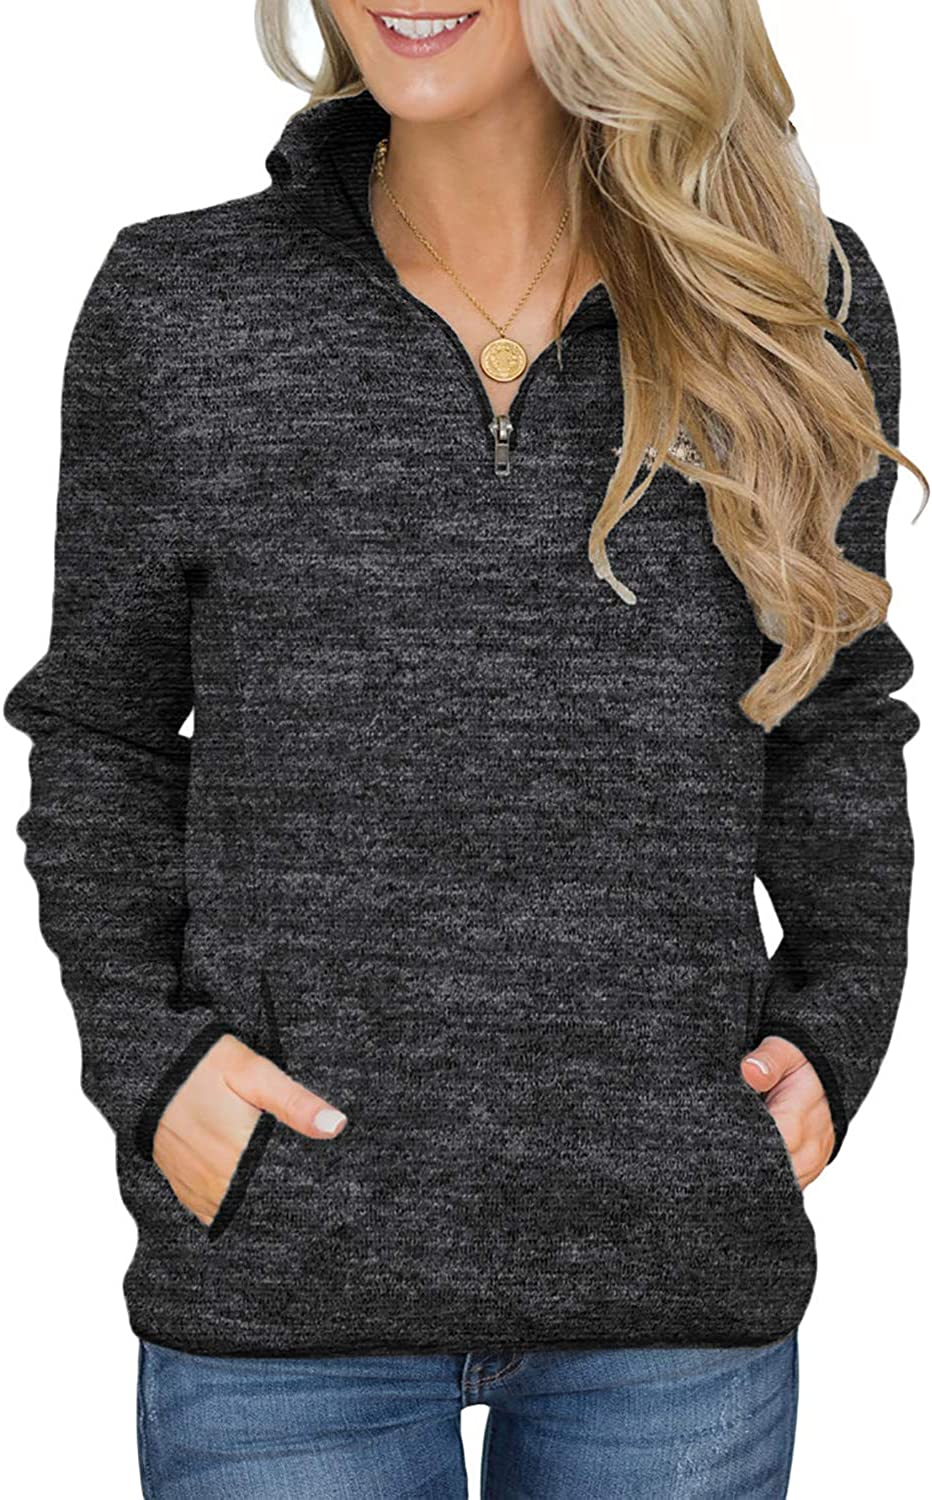 Aleumdr Women Casual Long Sleeve 1/4 Zipper Color Block Sweatshirts Stand Collar Pullover Tunic Tops with Pockets S-XXL at  Women's Clothing store